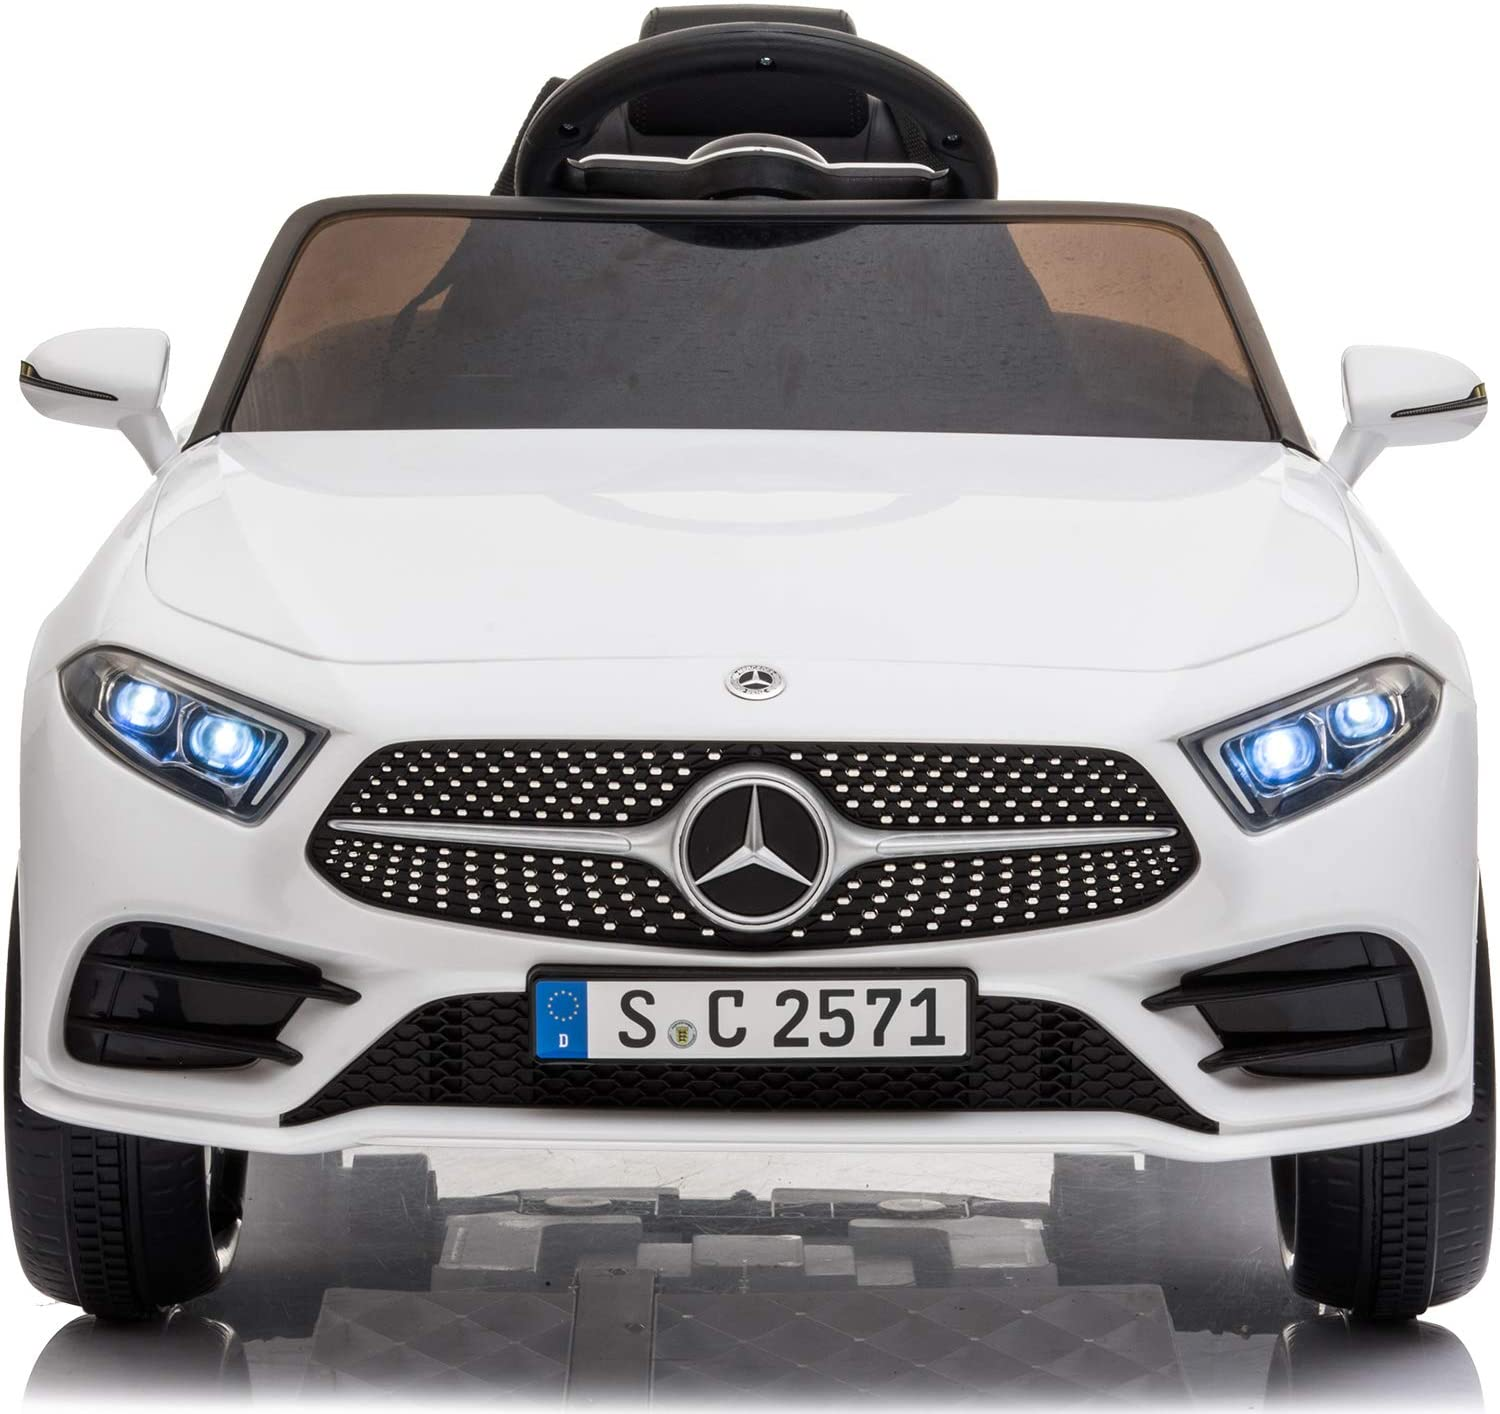 Little Brown Box Kids 12V Licensed Mercedes Benz CLS Ride on Car,Driving Battery Operated Vehicle Toy W/ Parent Remote-Control,Music,Sounds& Lights - for Toddler,Baby,Children,1,2,3 Years Old - White